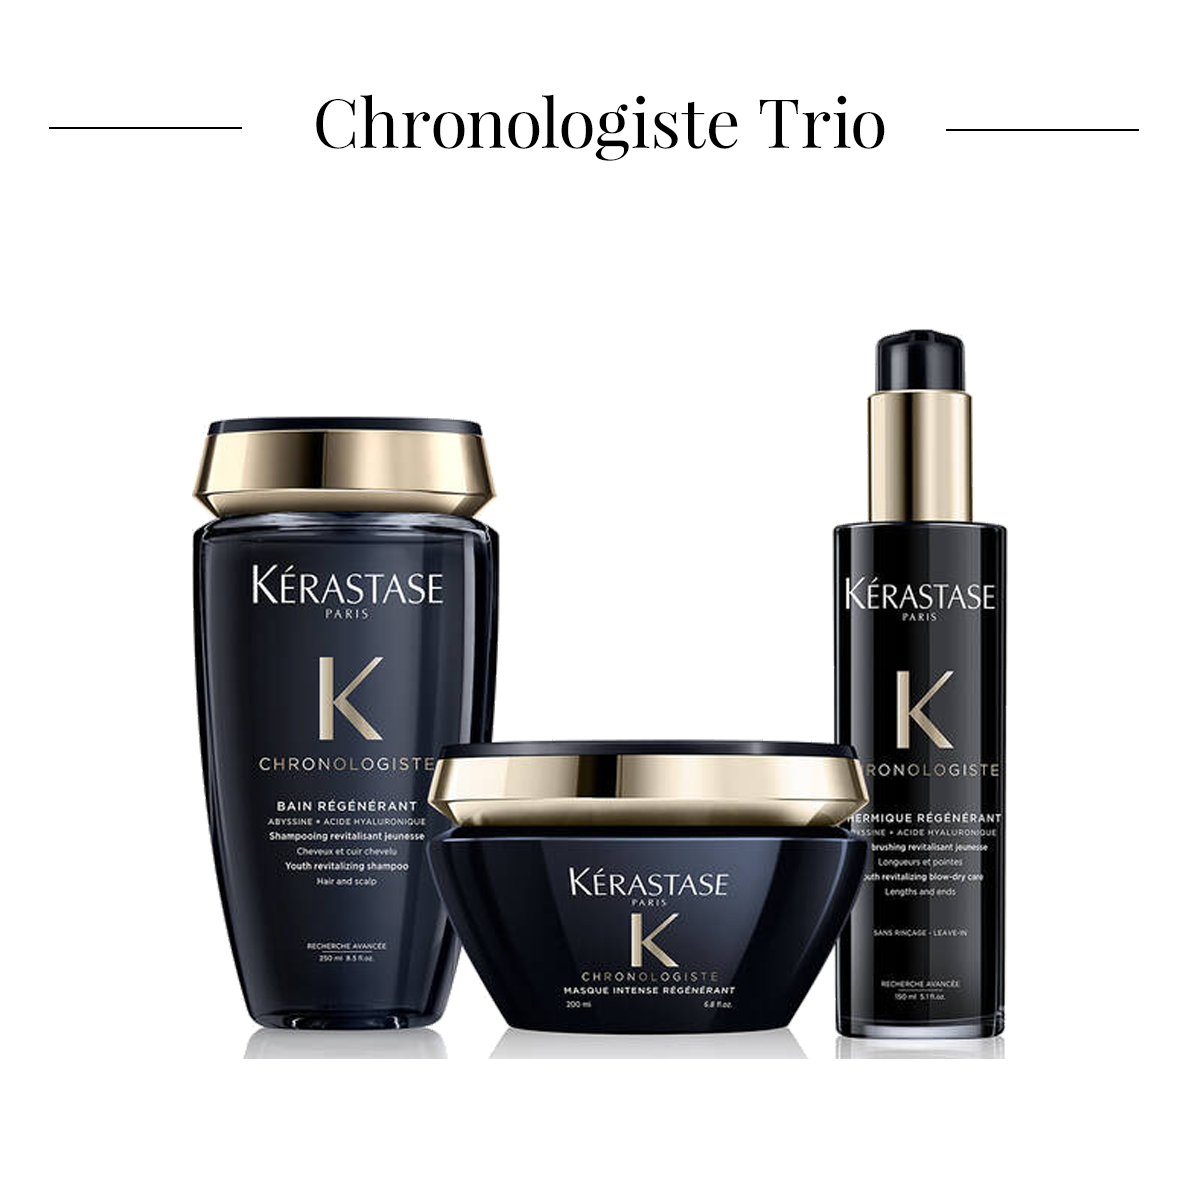 Kérastase Trio Chronologiste Bundle